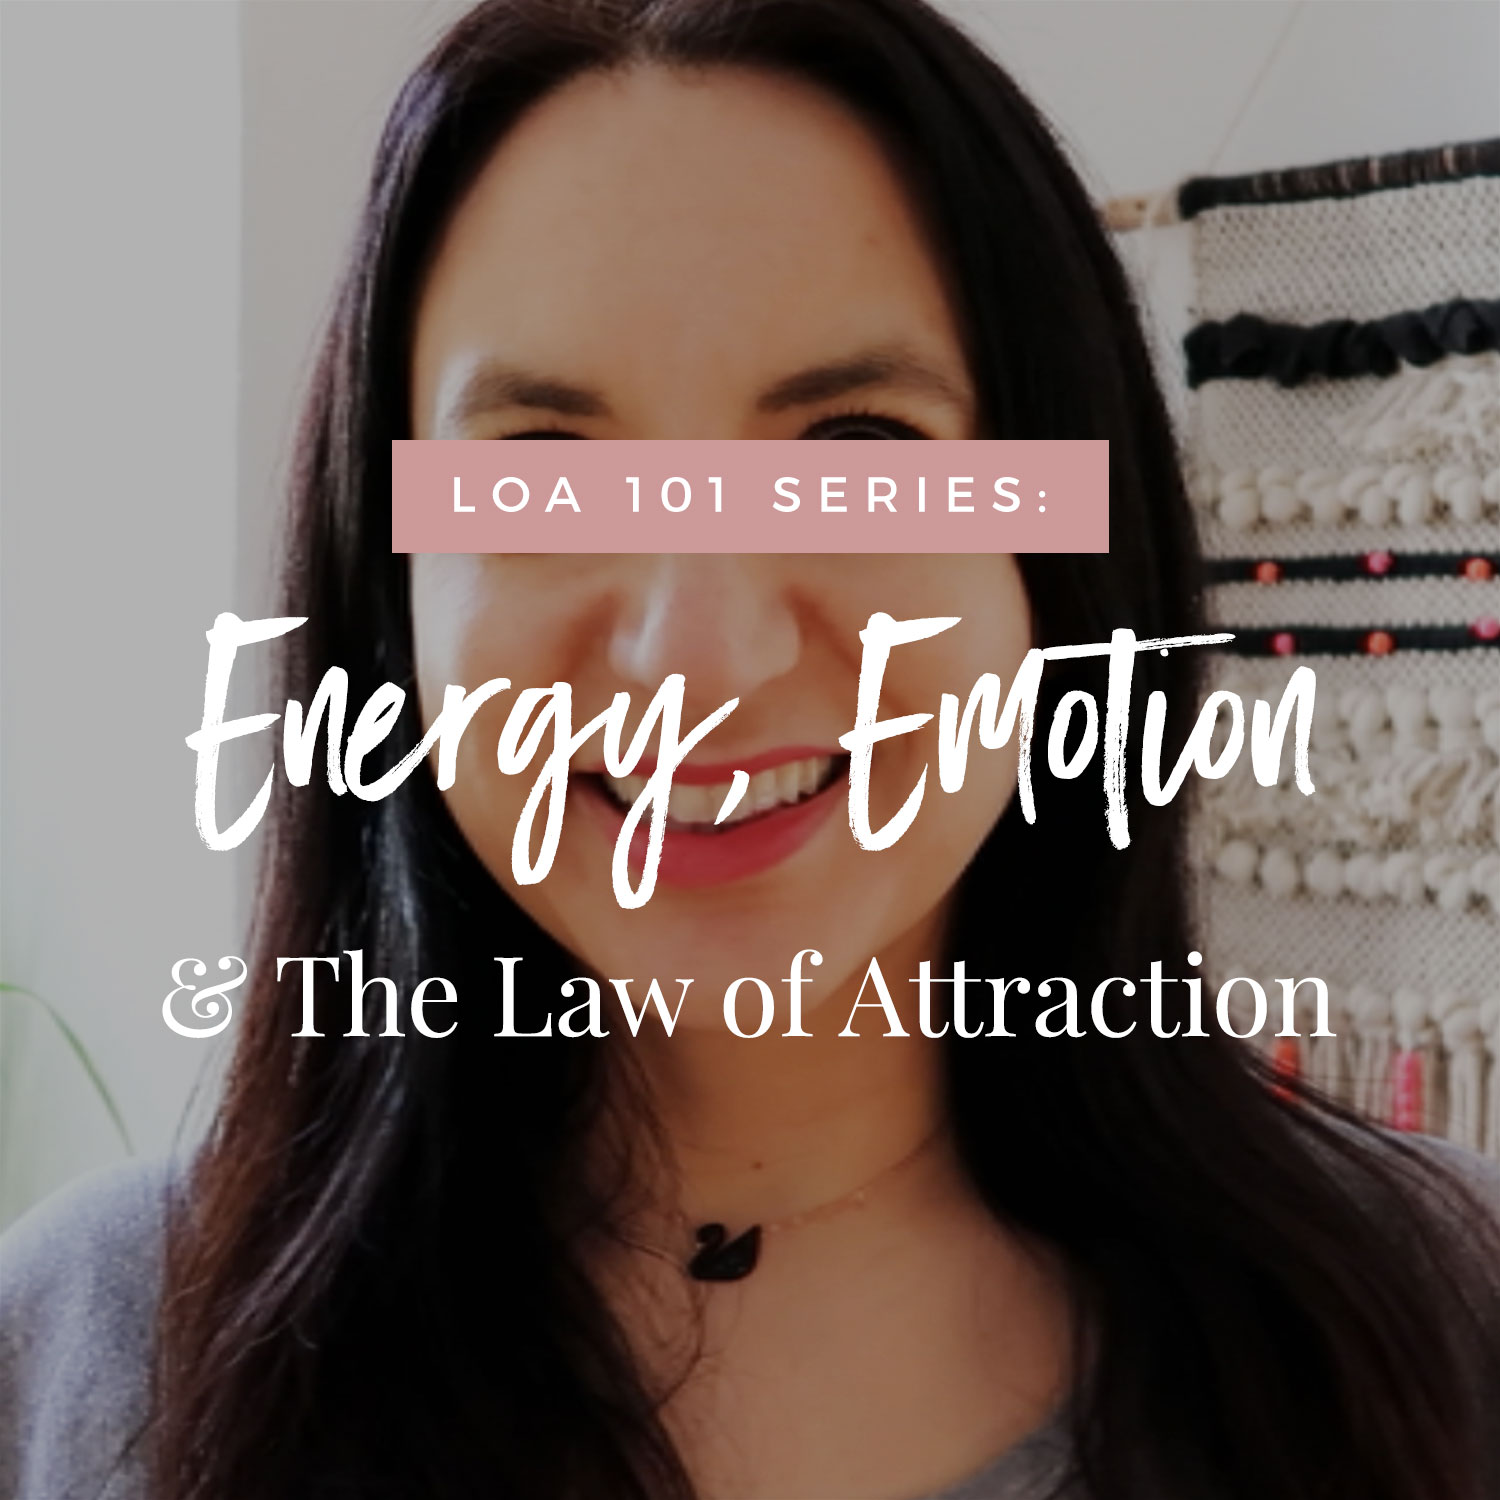 LoA 101 Series: Energy, Emotions + The Law of Attraction